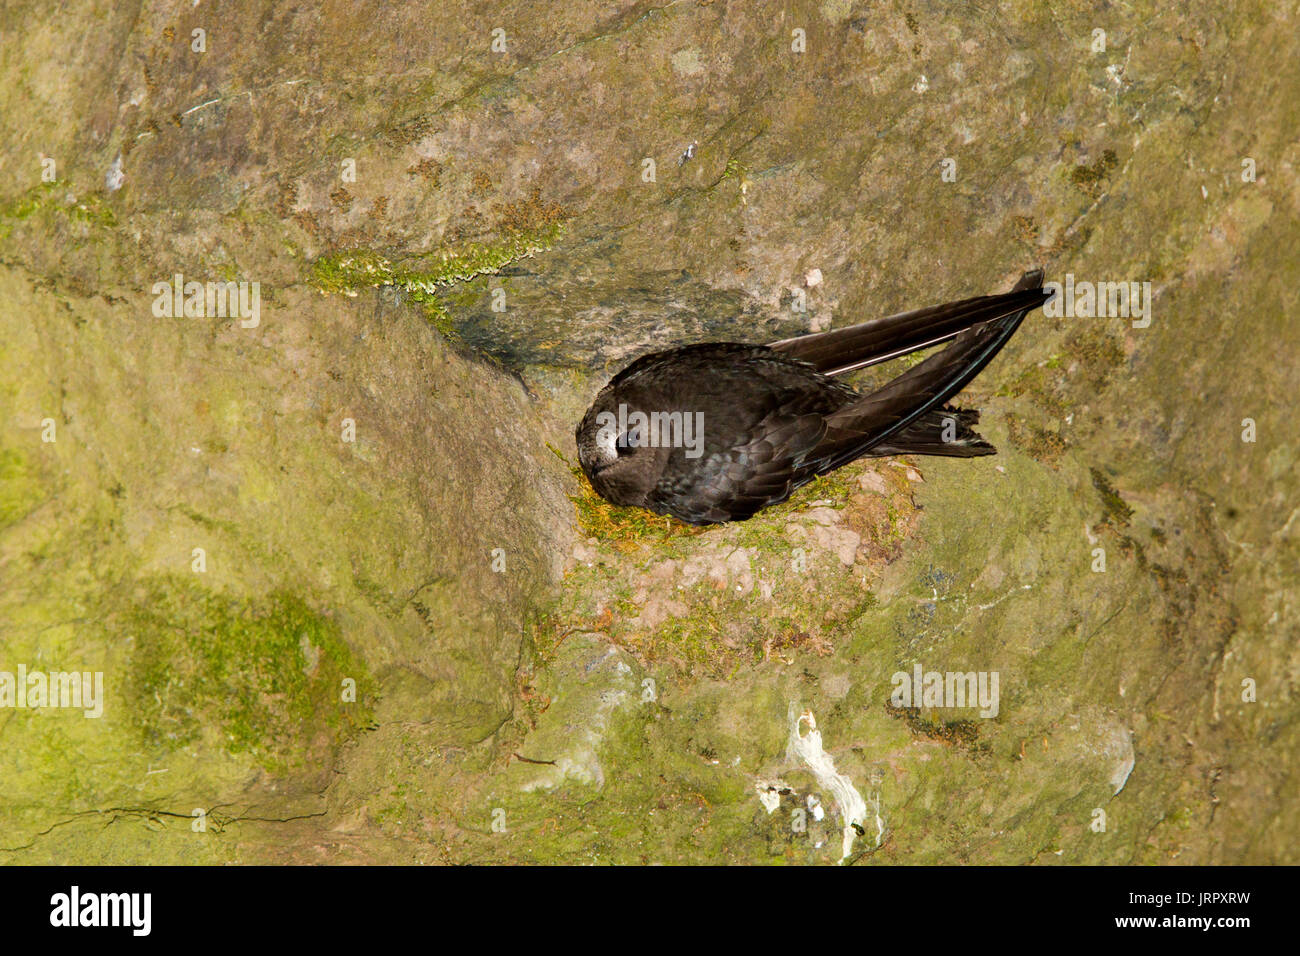 Black Swift  Cypseloides niger Box Canyon Falls, Ouray County, Colorado, United States 29 June 2017      Adult on nest.       	Apodidae - Stock Image